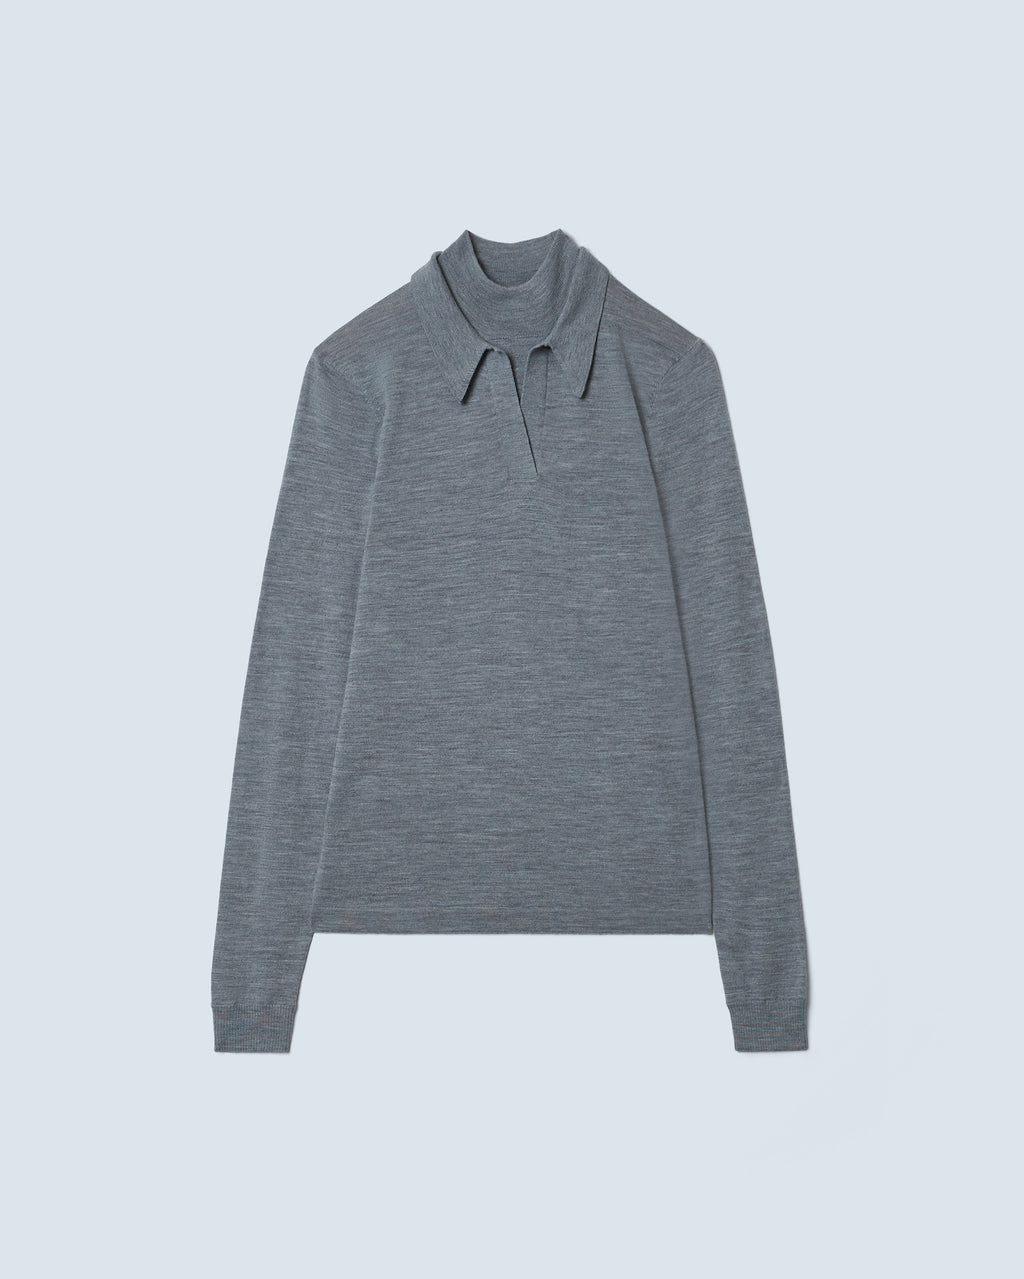 The Gia Sweater in Heather Grey